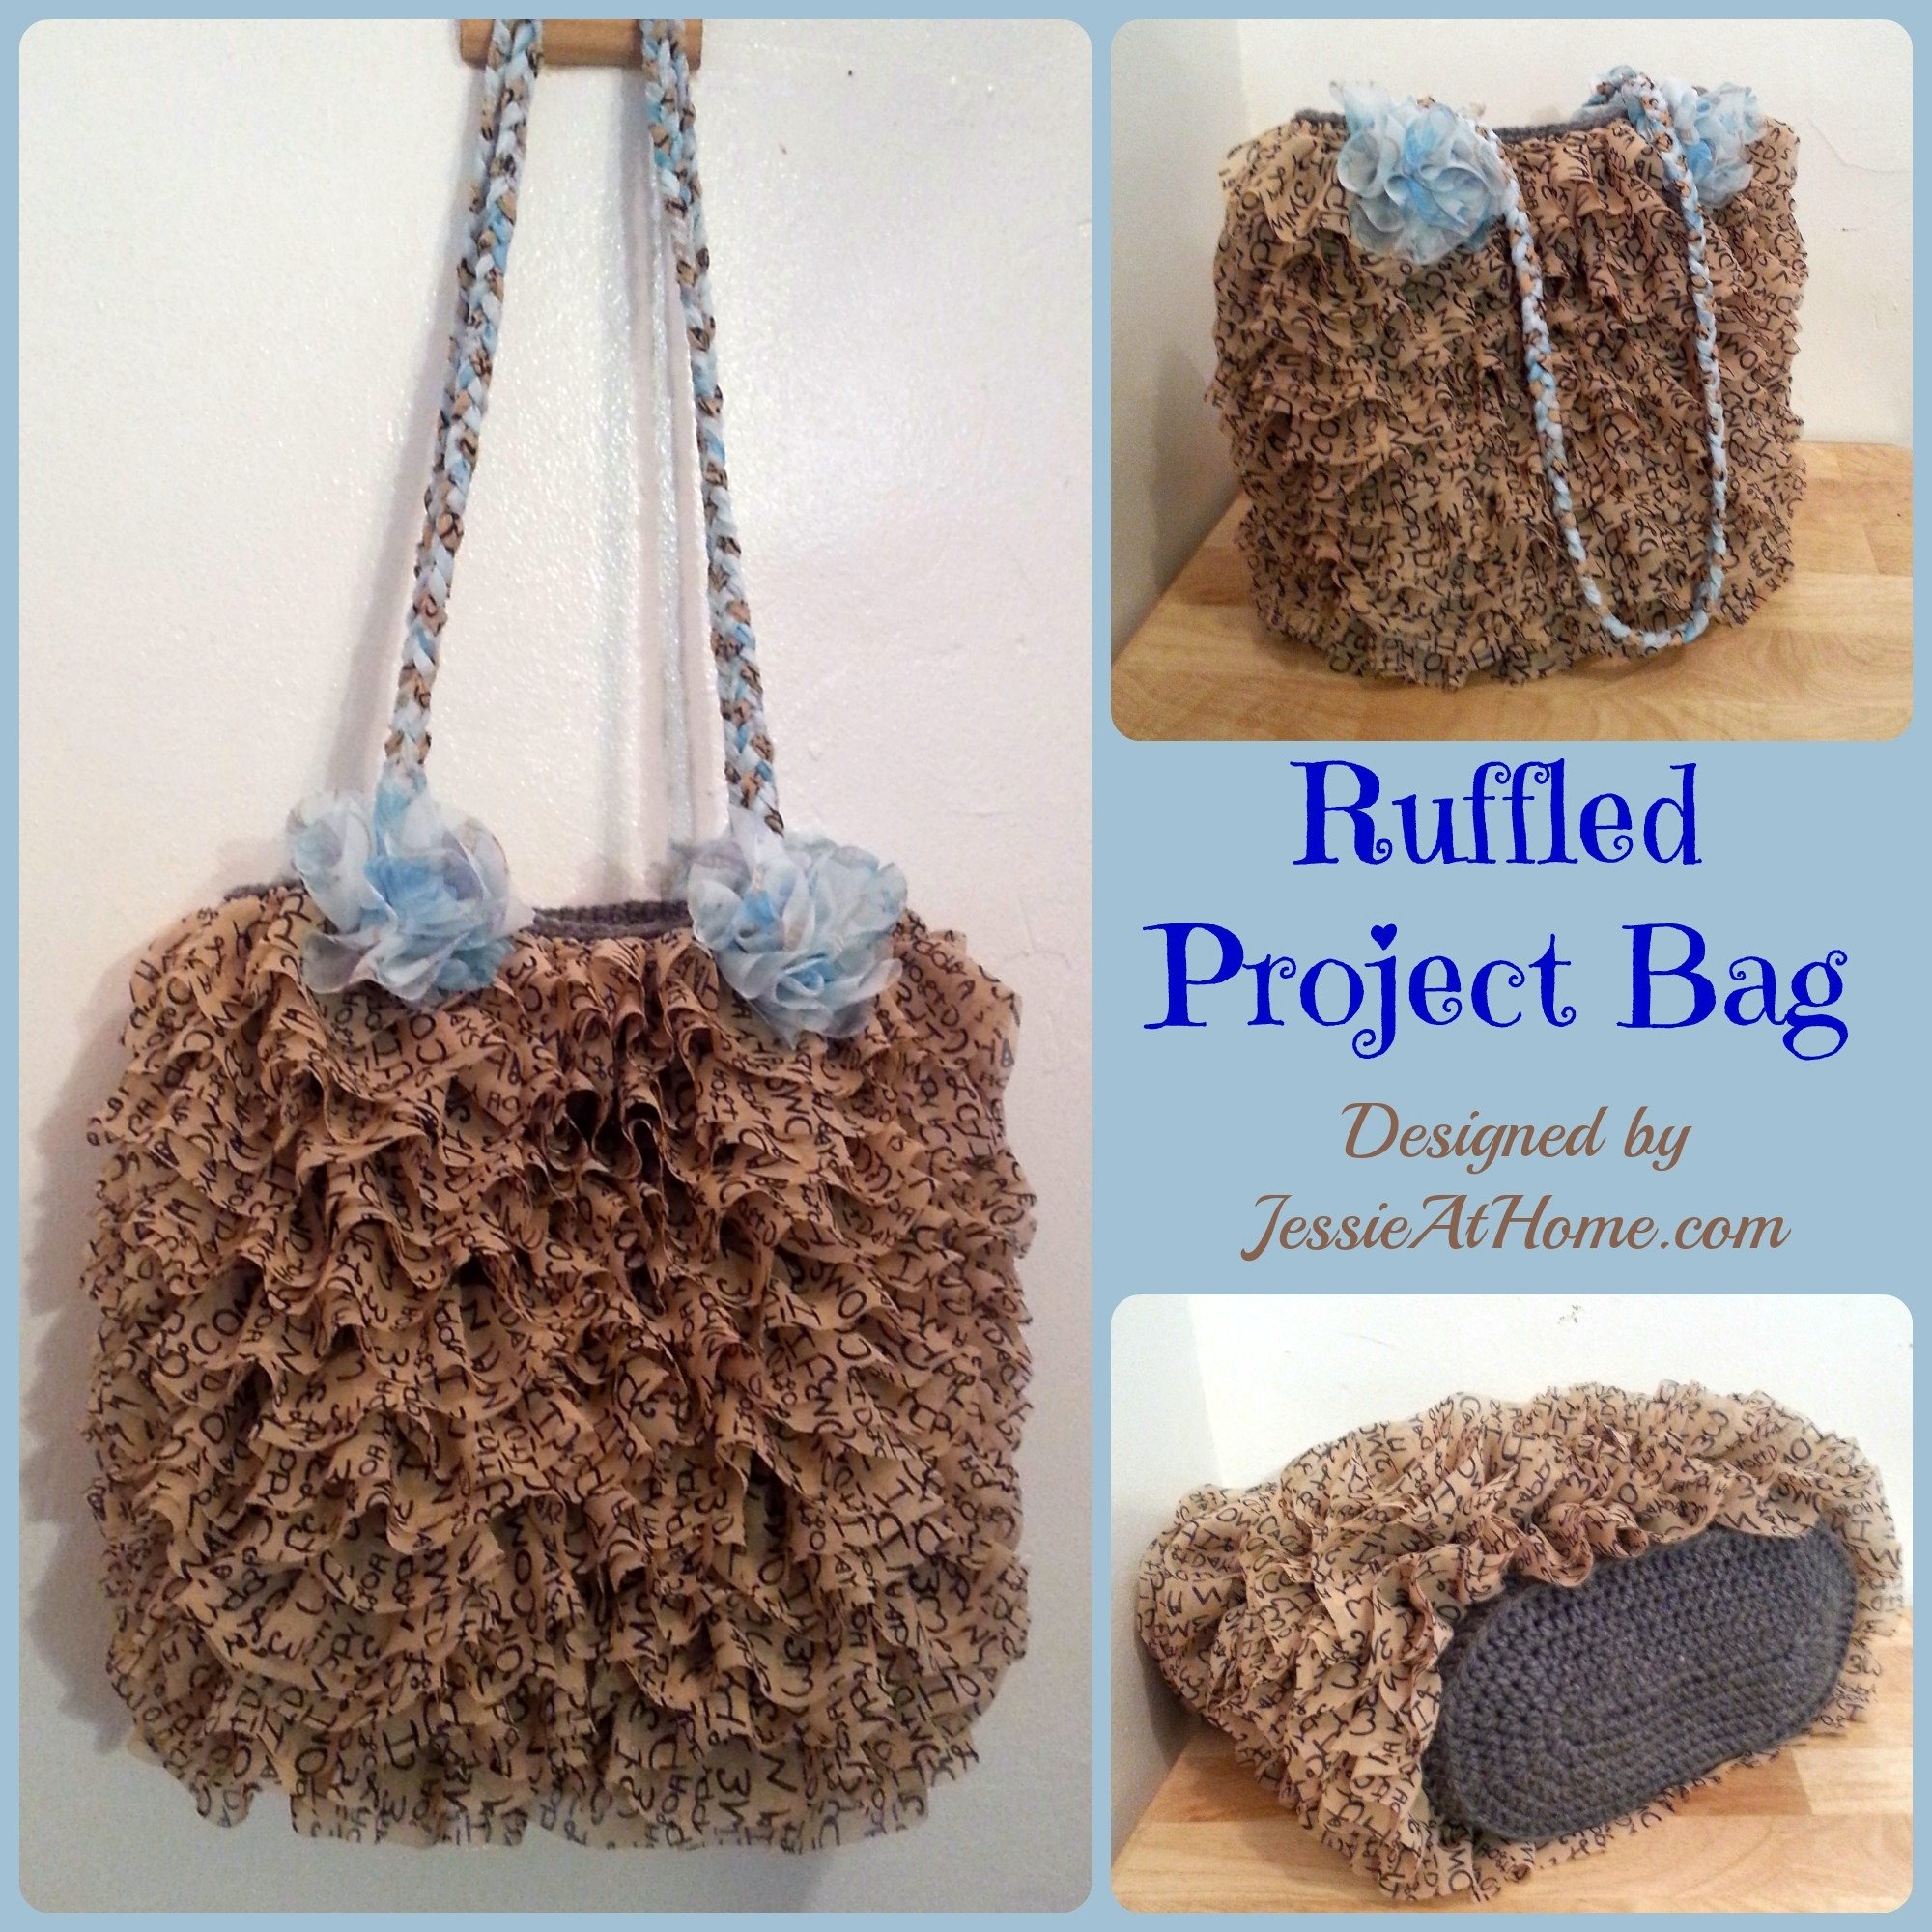 Crochet Project Bag : Ruffled Project Bag ~ FREE Crochet Pattern